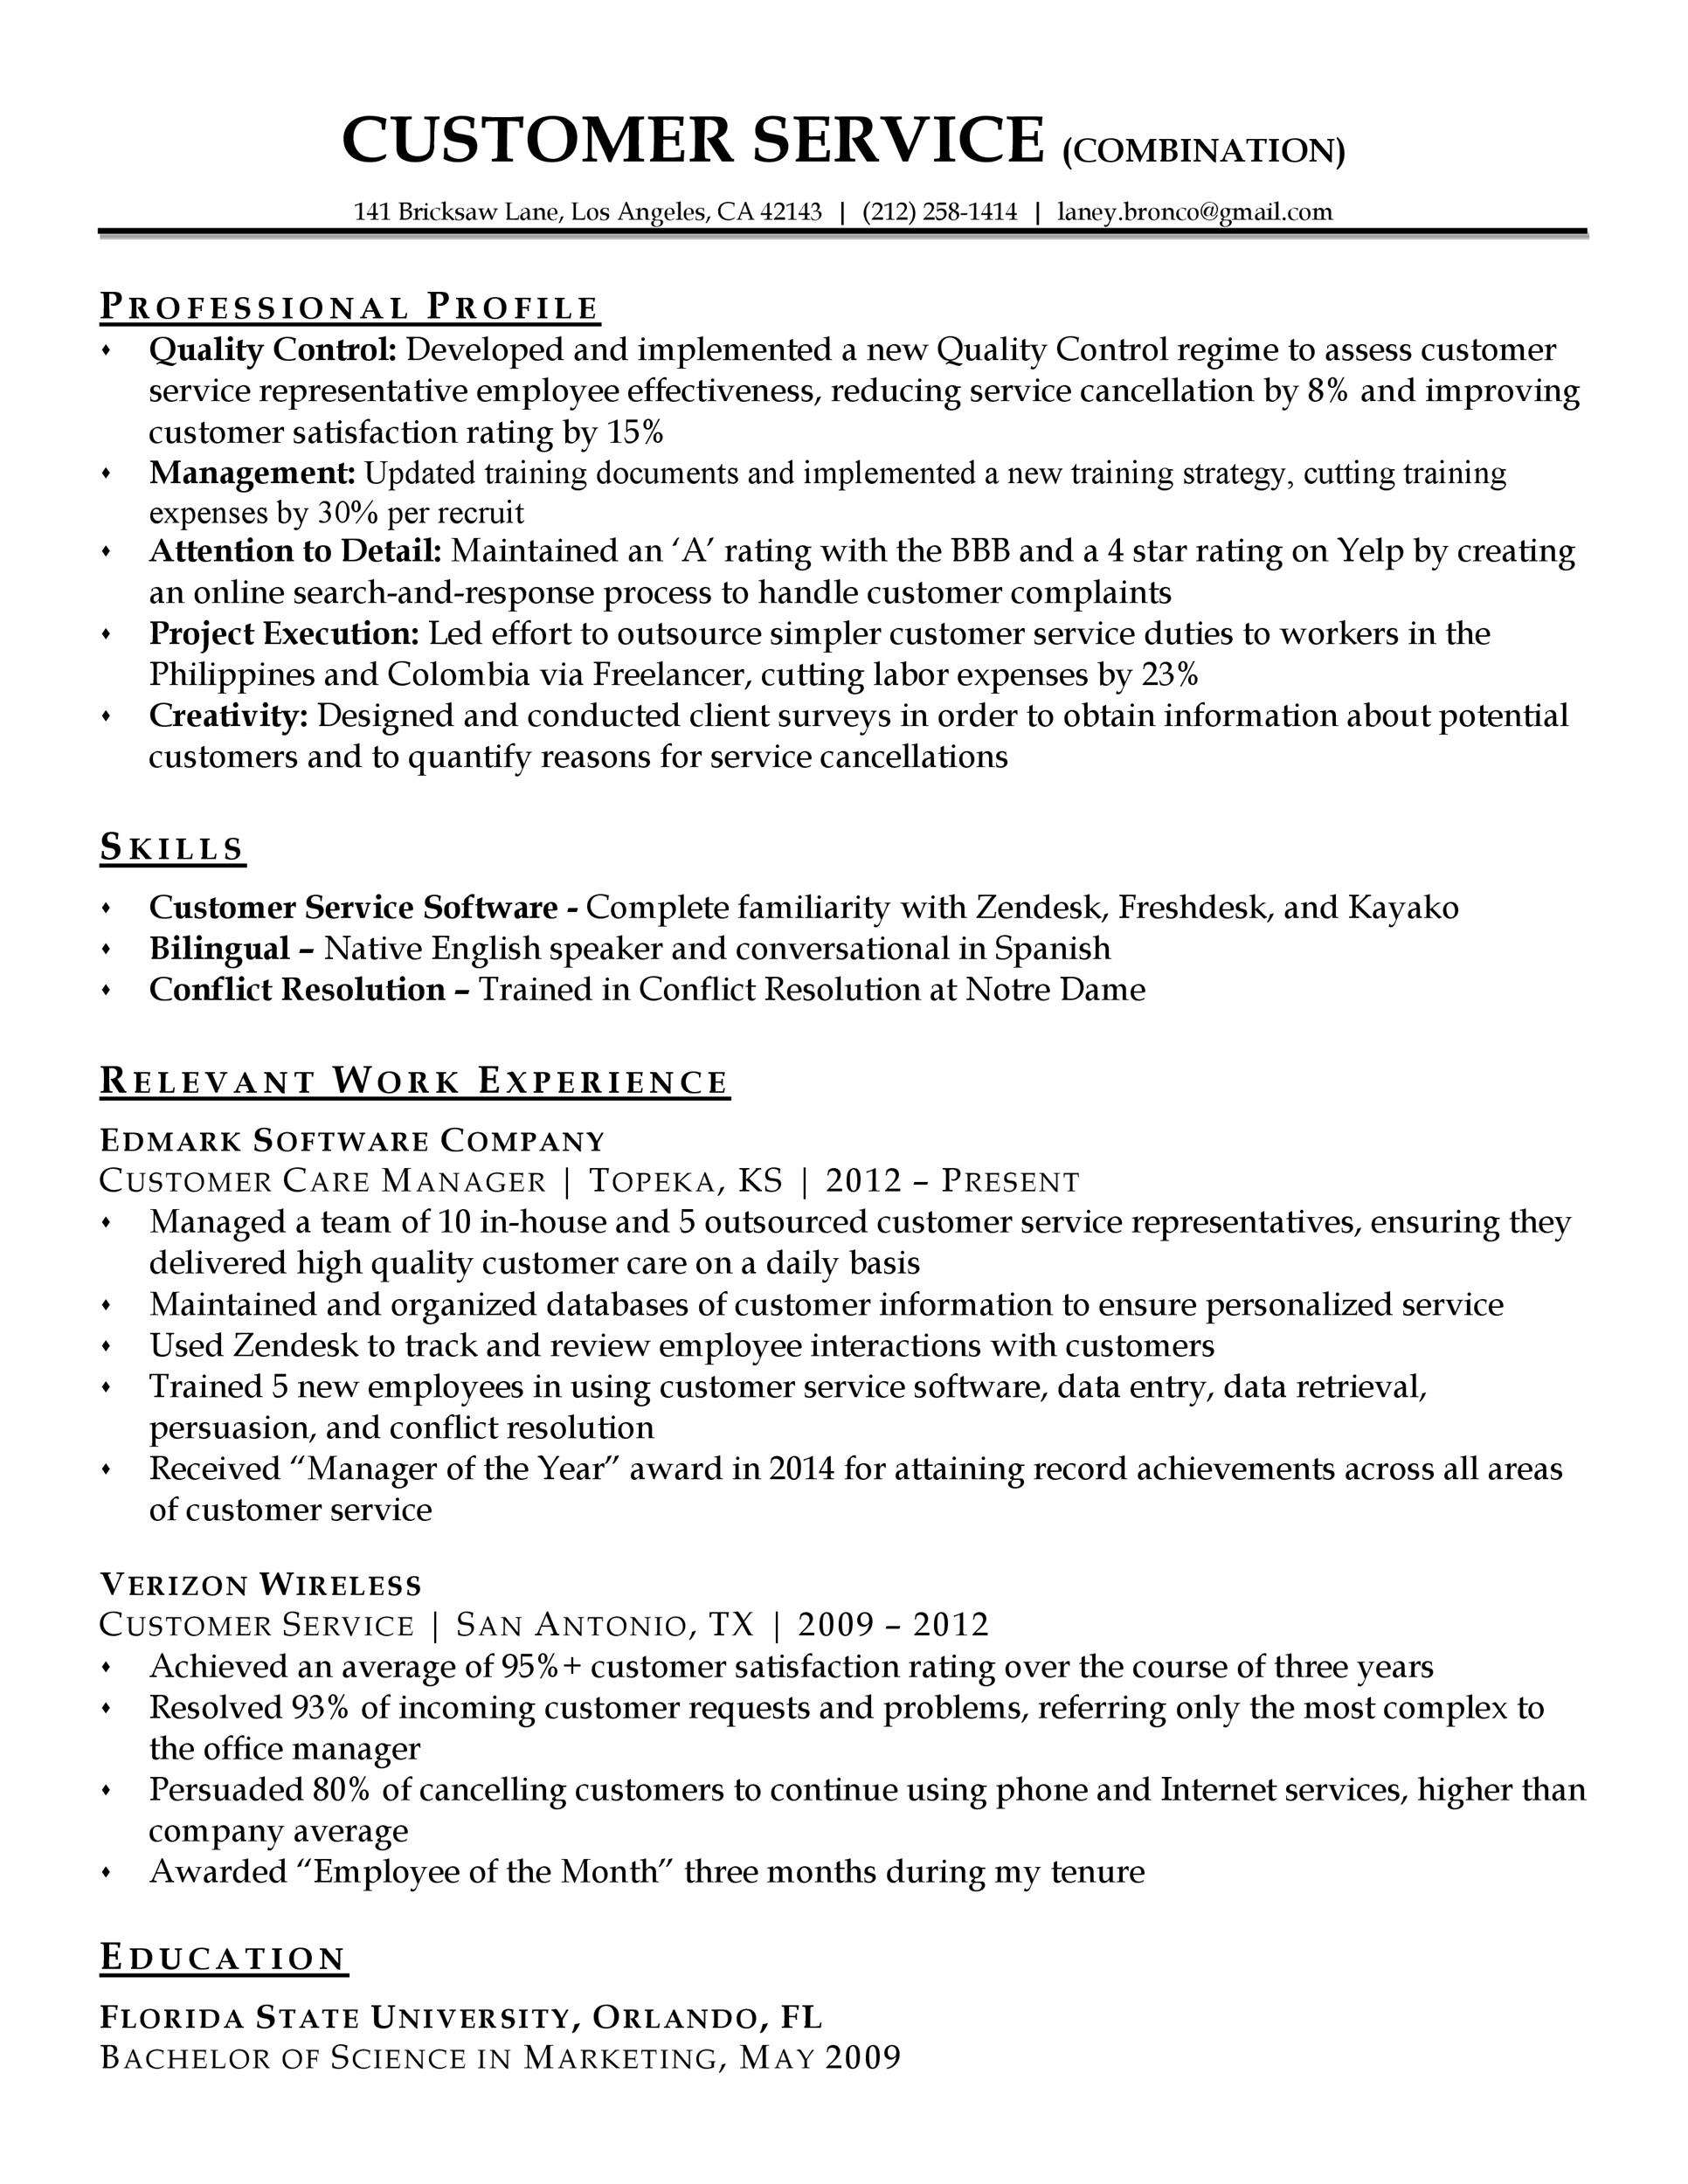 Printable Customer Service Resume Template 01  Customer Service Resume Template Free